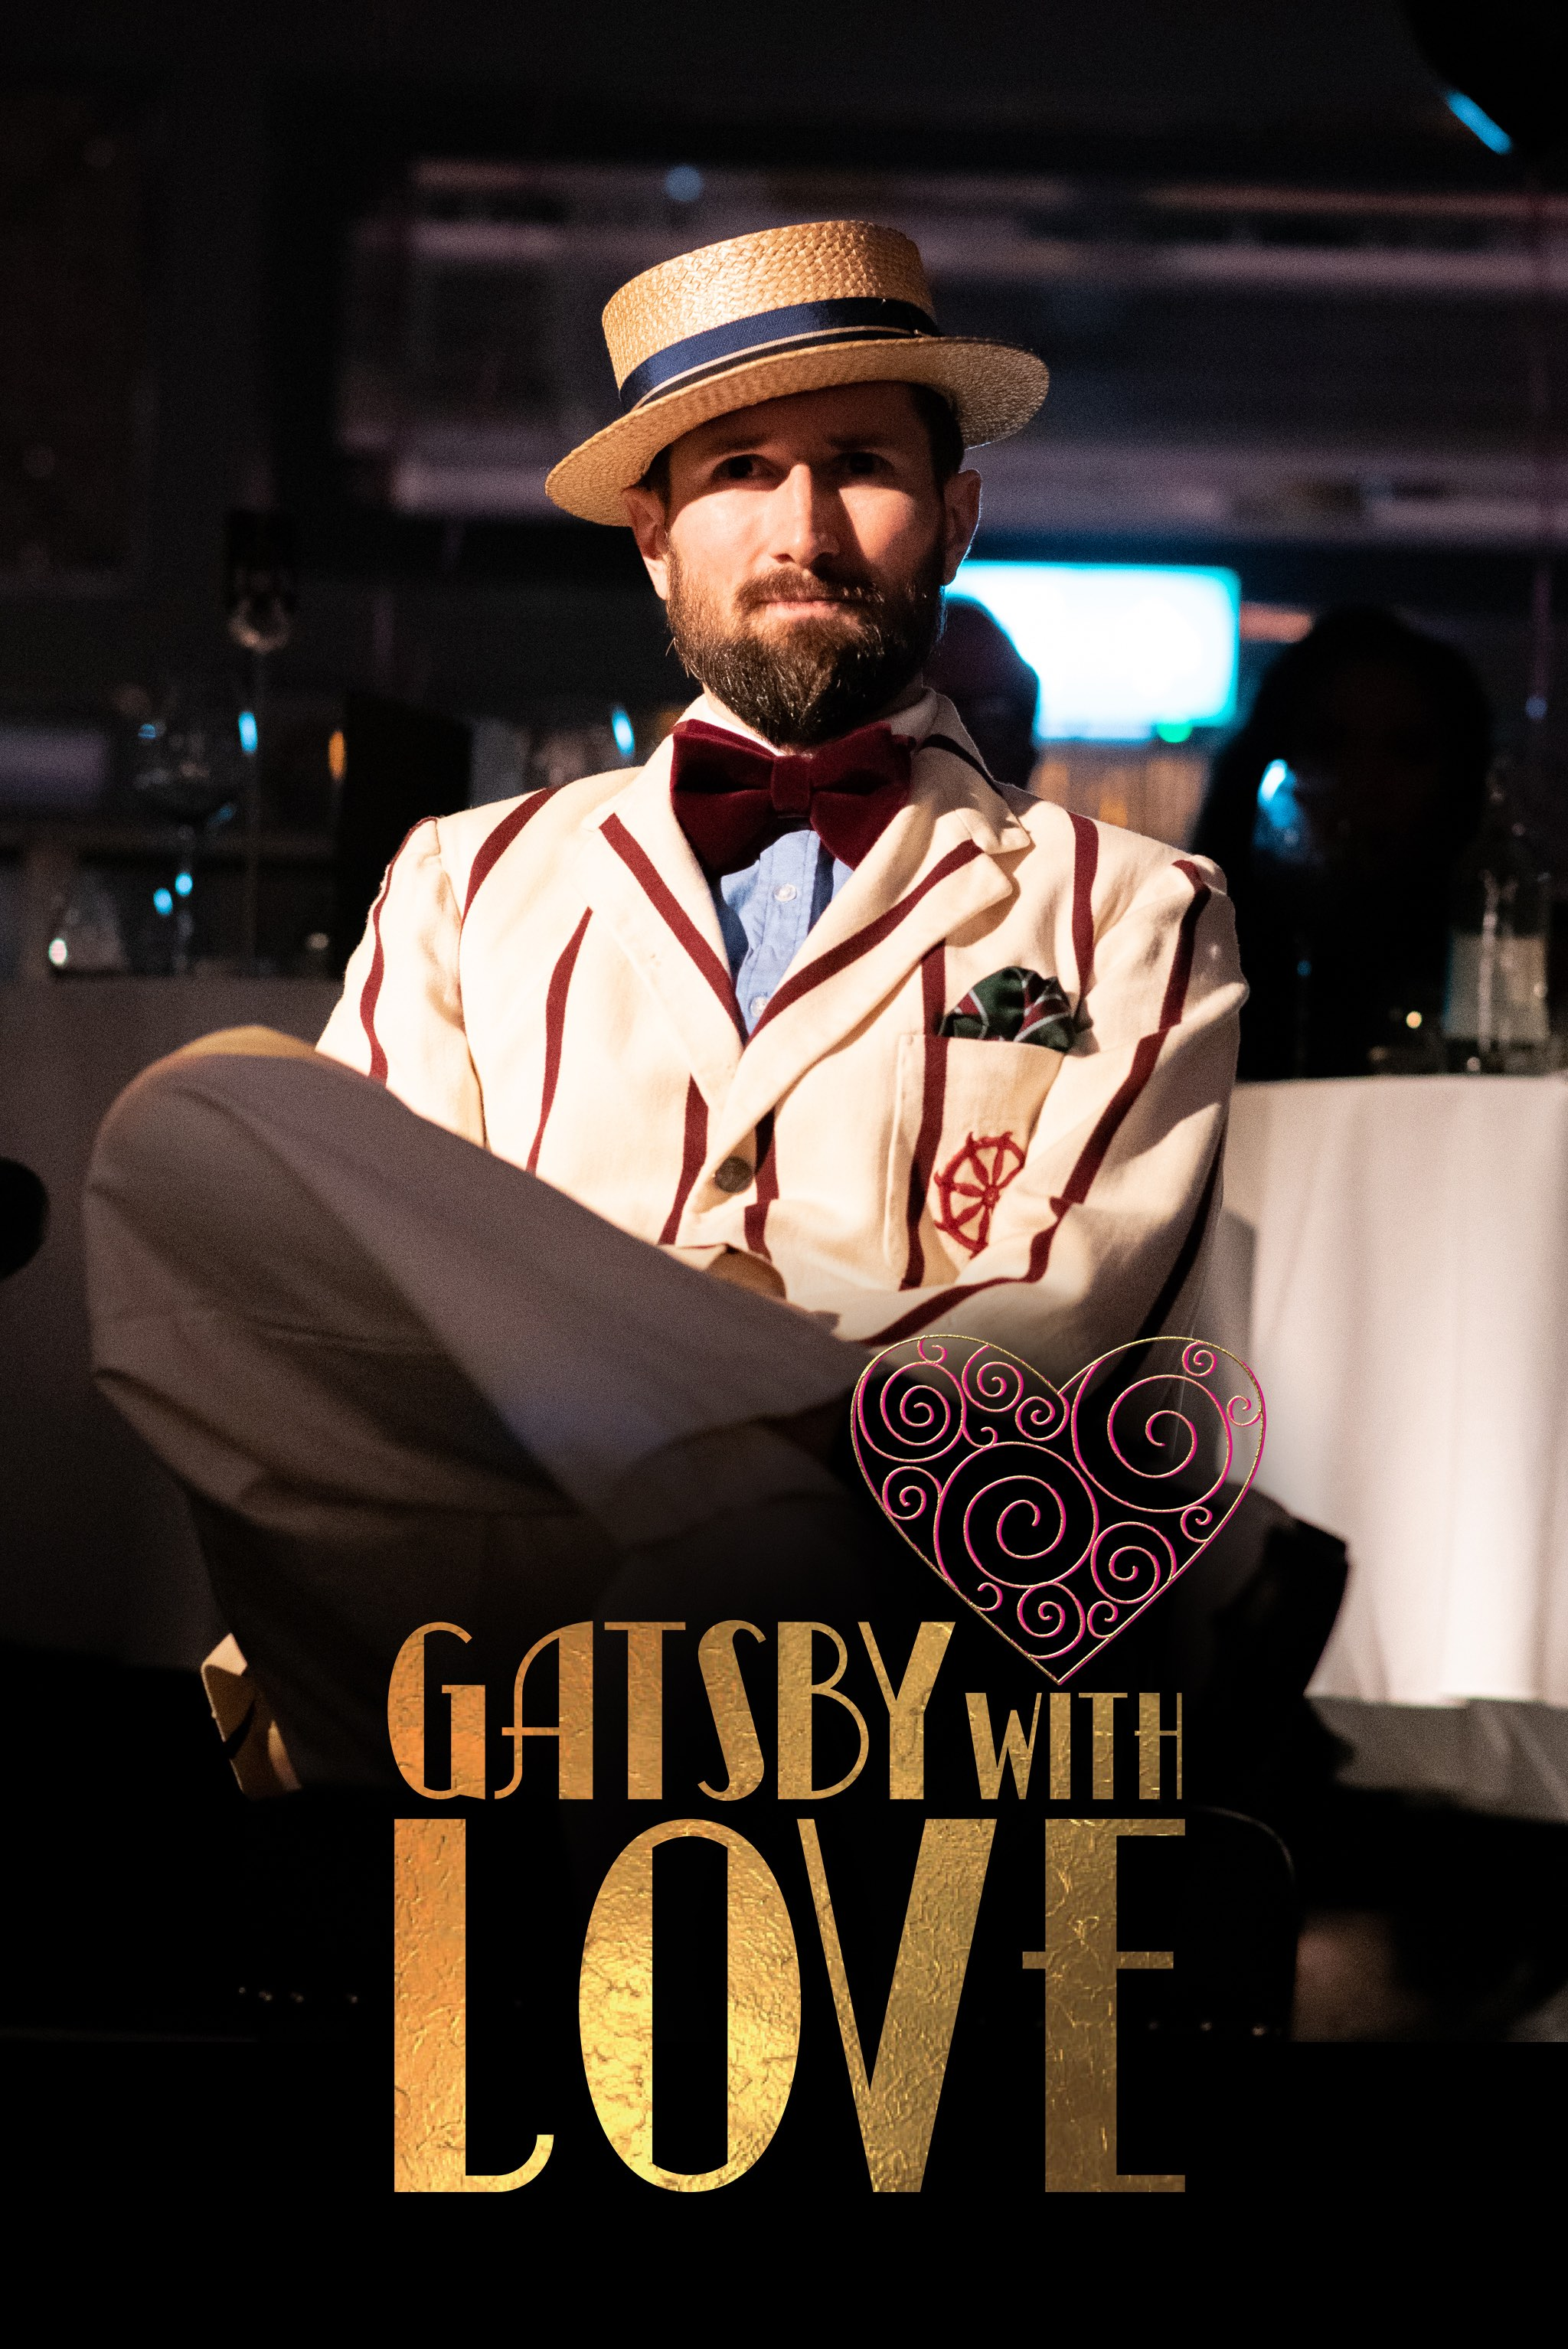 VALENTINES SPECTACULAR - GATSBY WITH LOVE